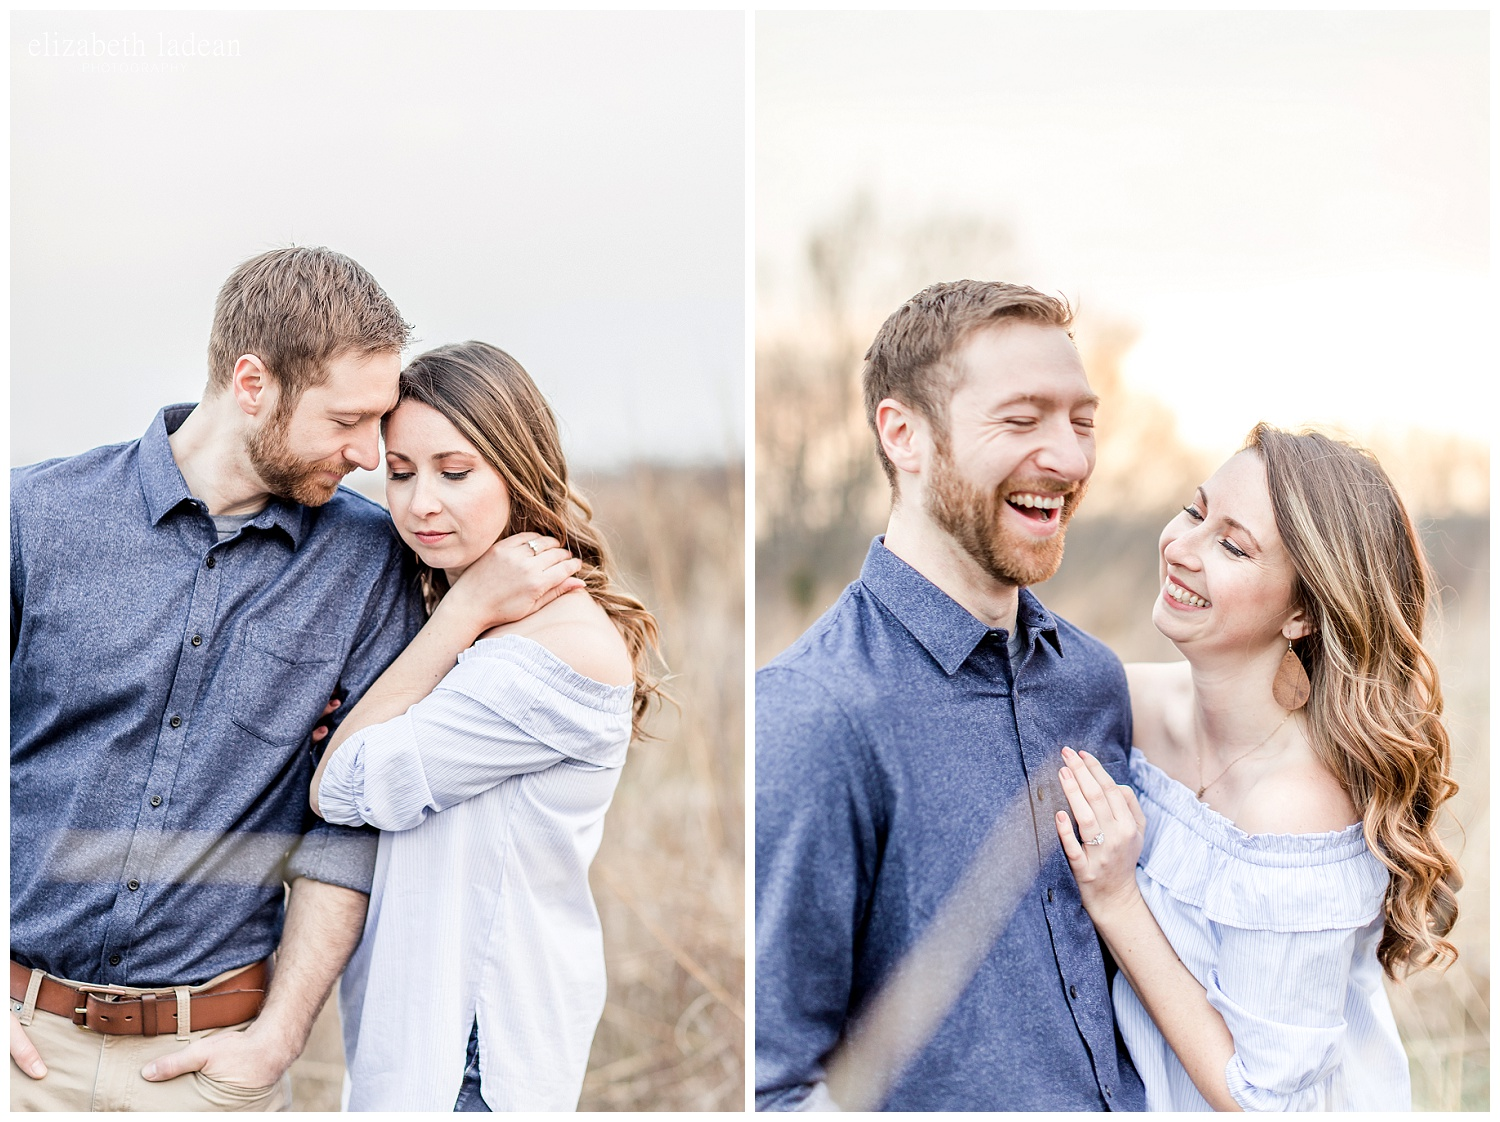 Kansas-City-Engagement-Photographer-K+D2018-elizabeth-ladean-photography-photo-_6633.jpg